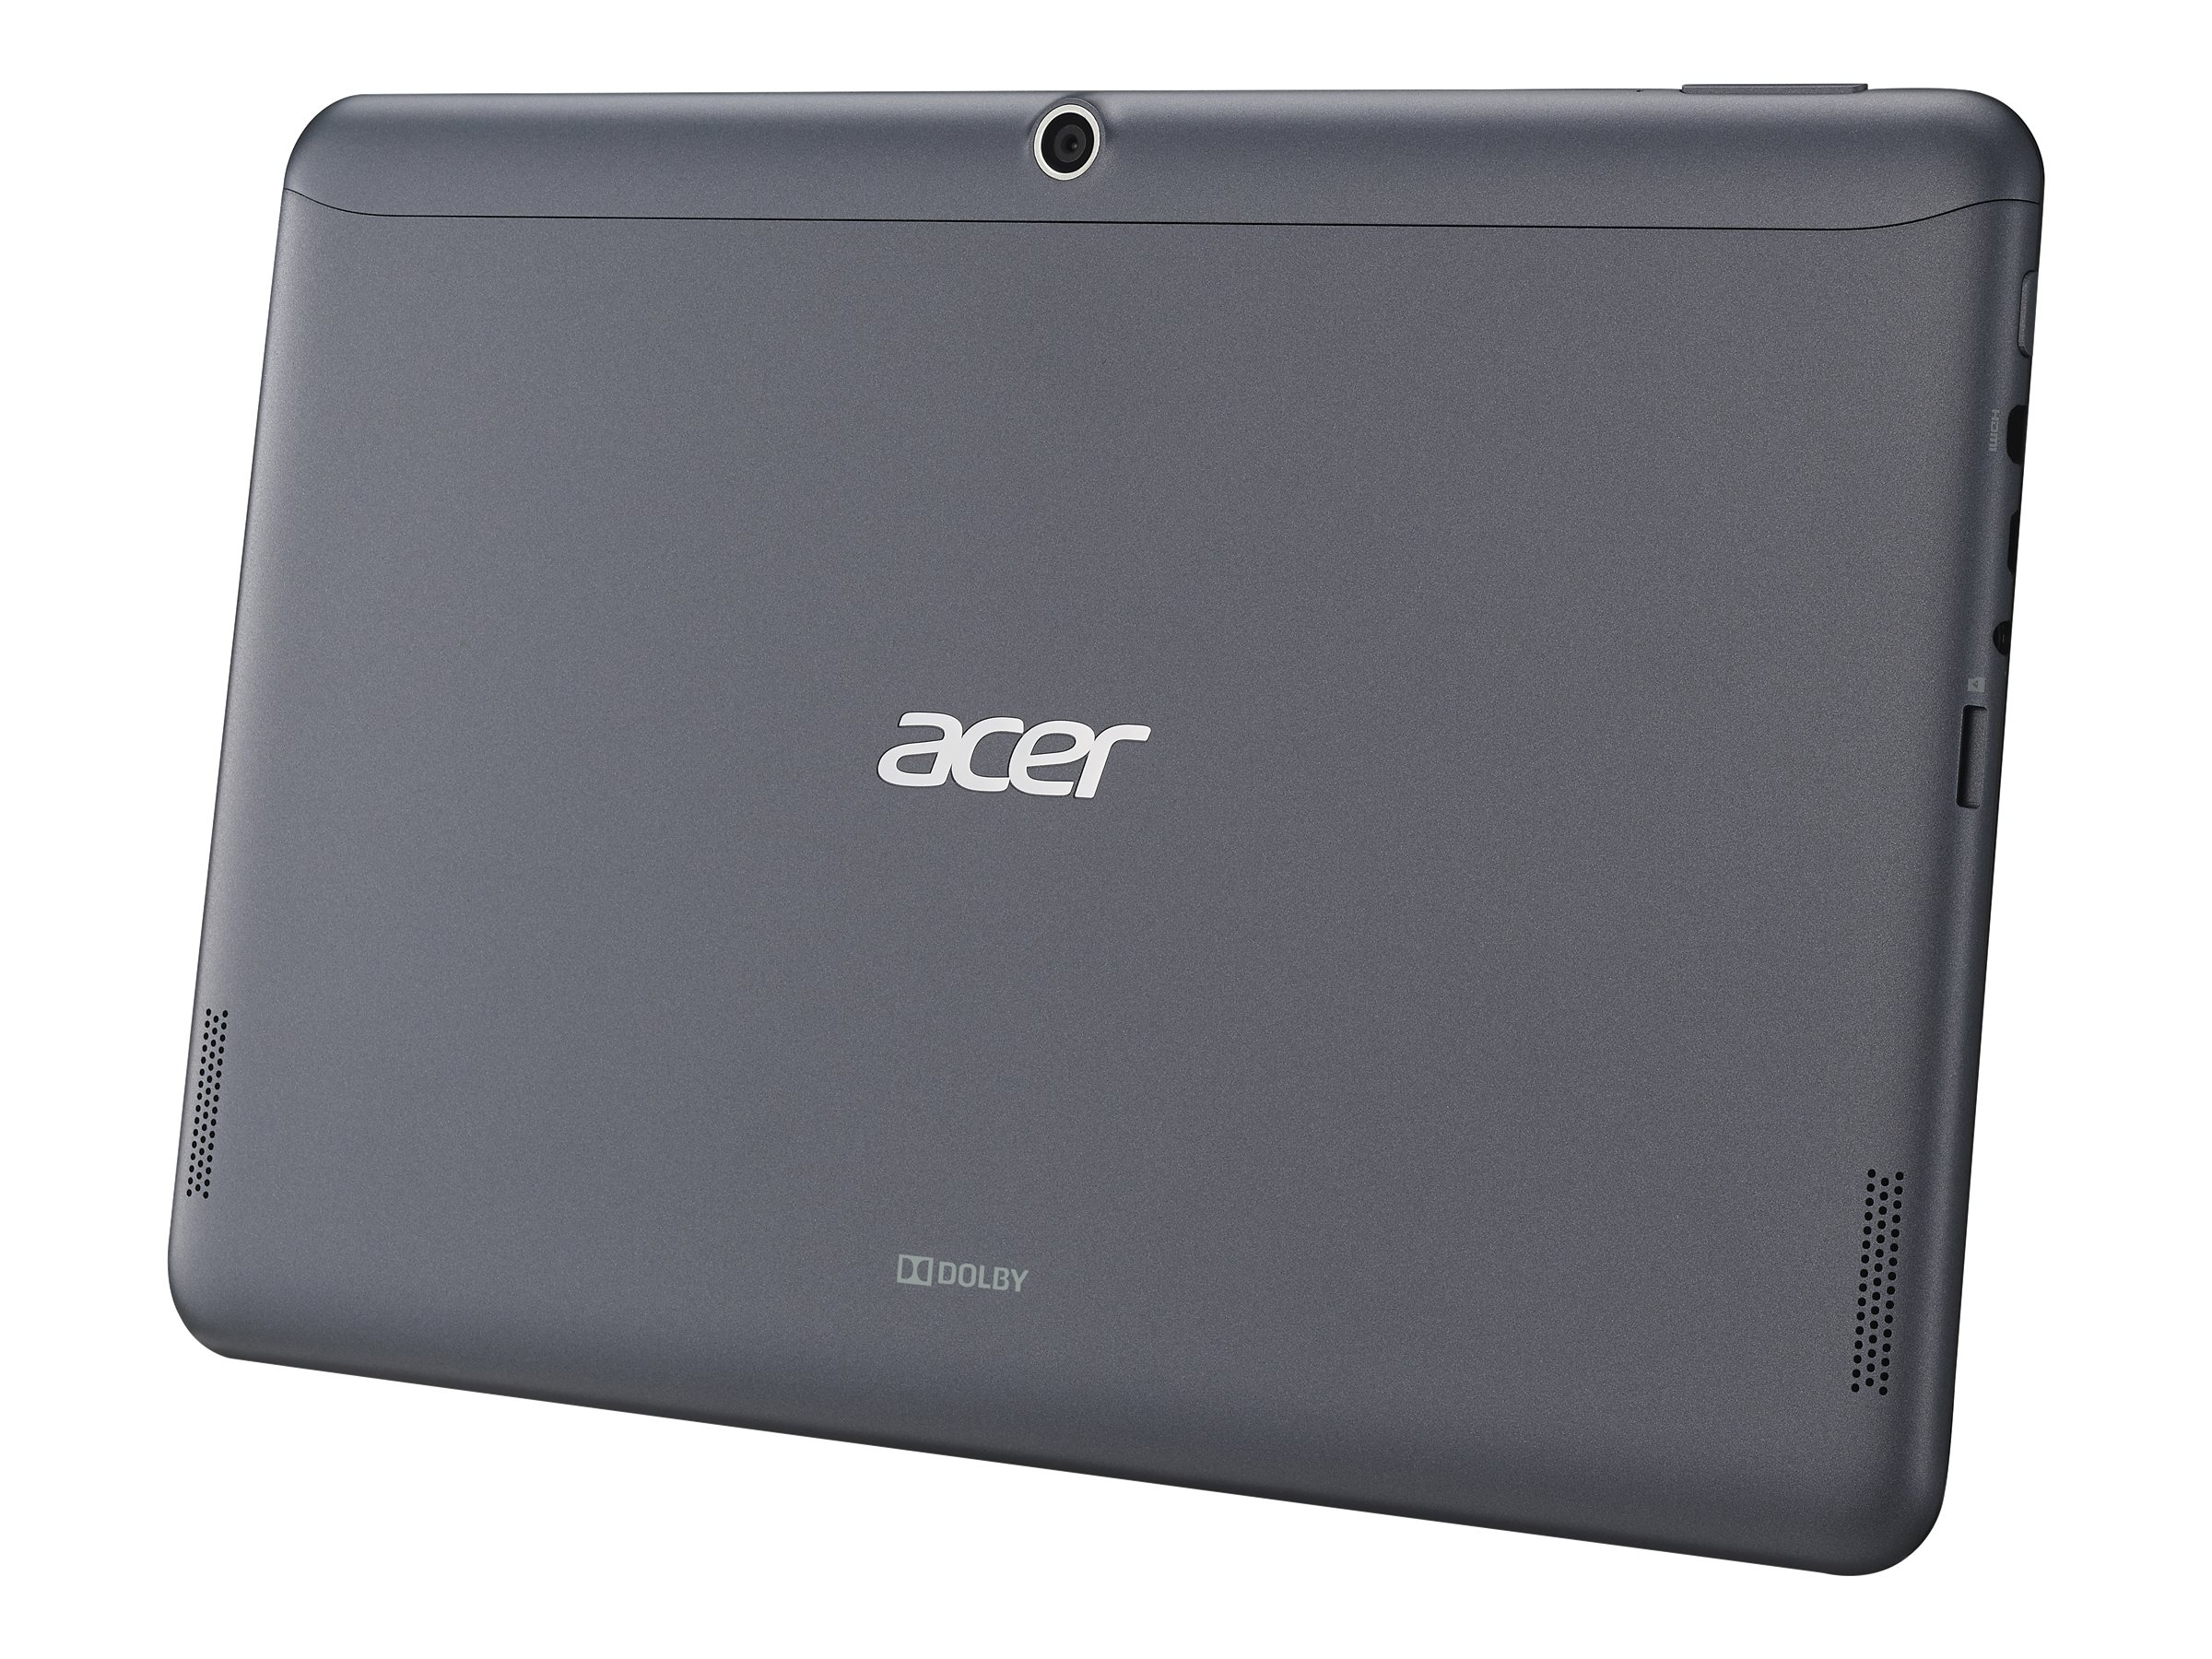 Scratch & Dent Acer Iconia A3-A20-K19H MT8127 1.3GHz 1GB 16GB SSD bgn bt 2xWC 2C 10.1 WXGA MT Android 4.4, NT.L5GAA.001